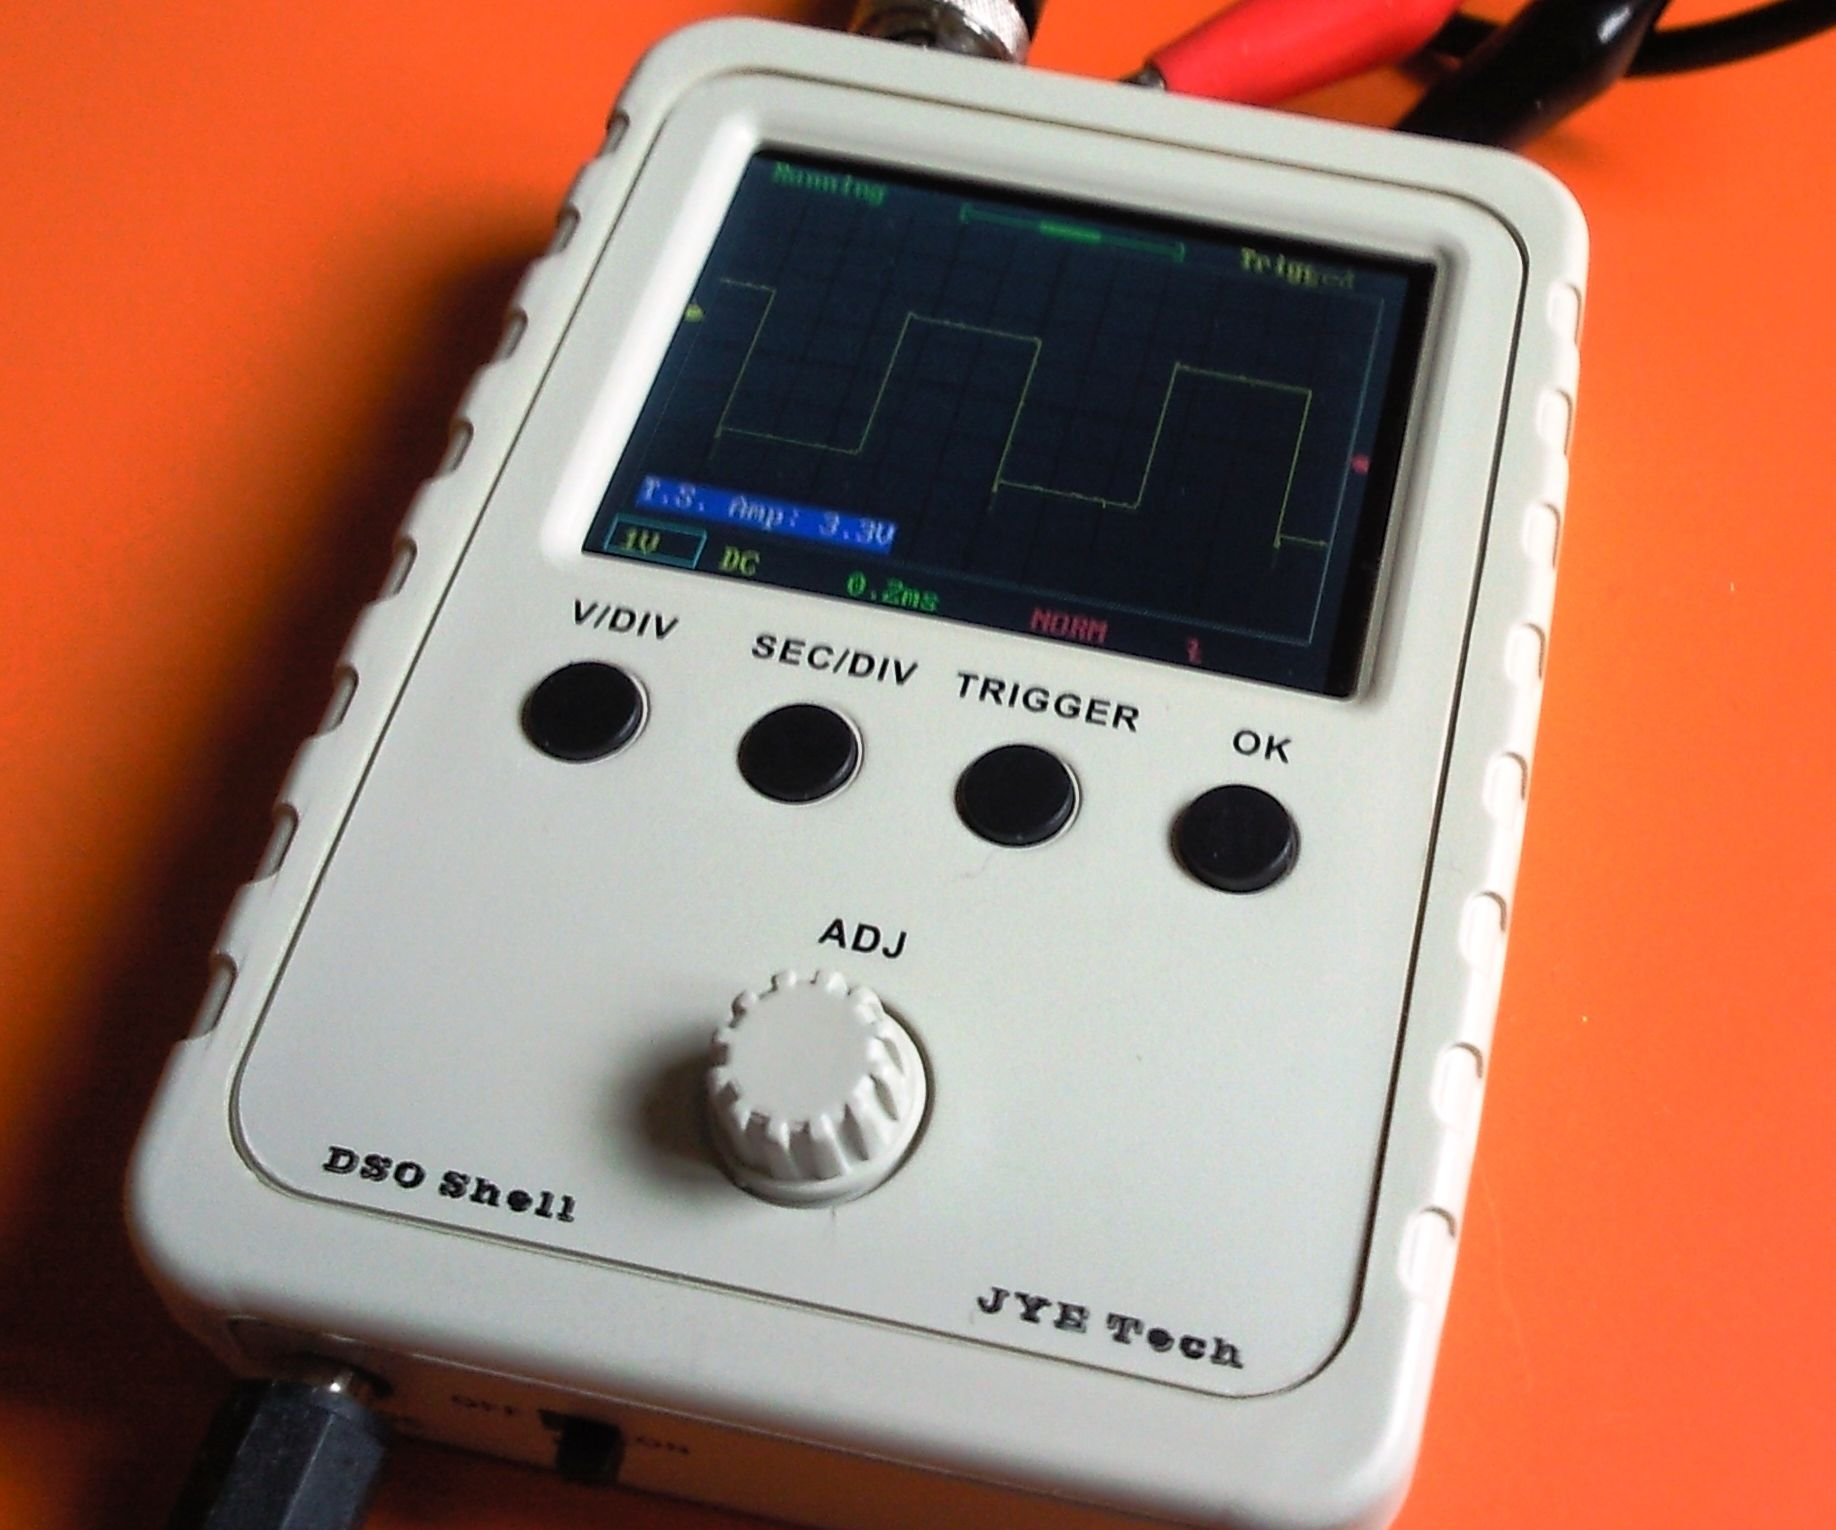 DIY Oscilloscope Kit - Assembling and Troubleshooting Guide